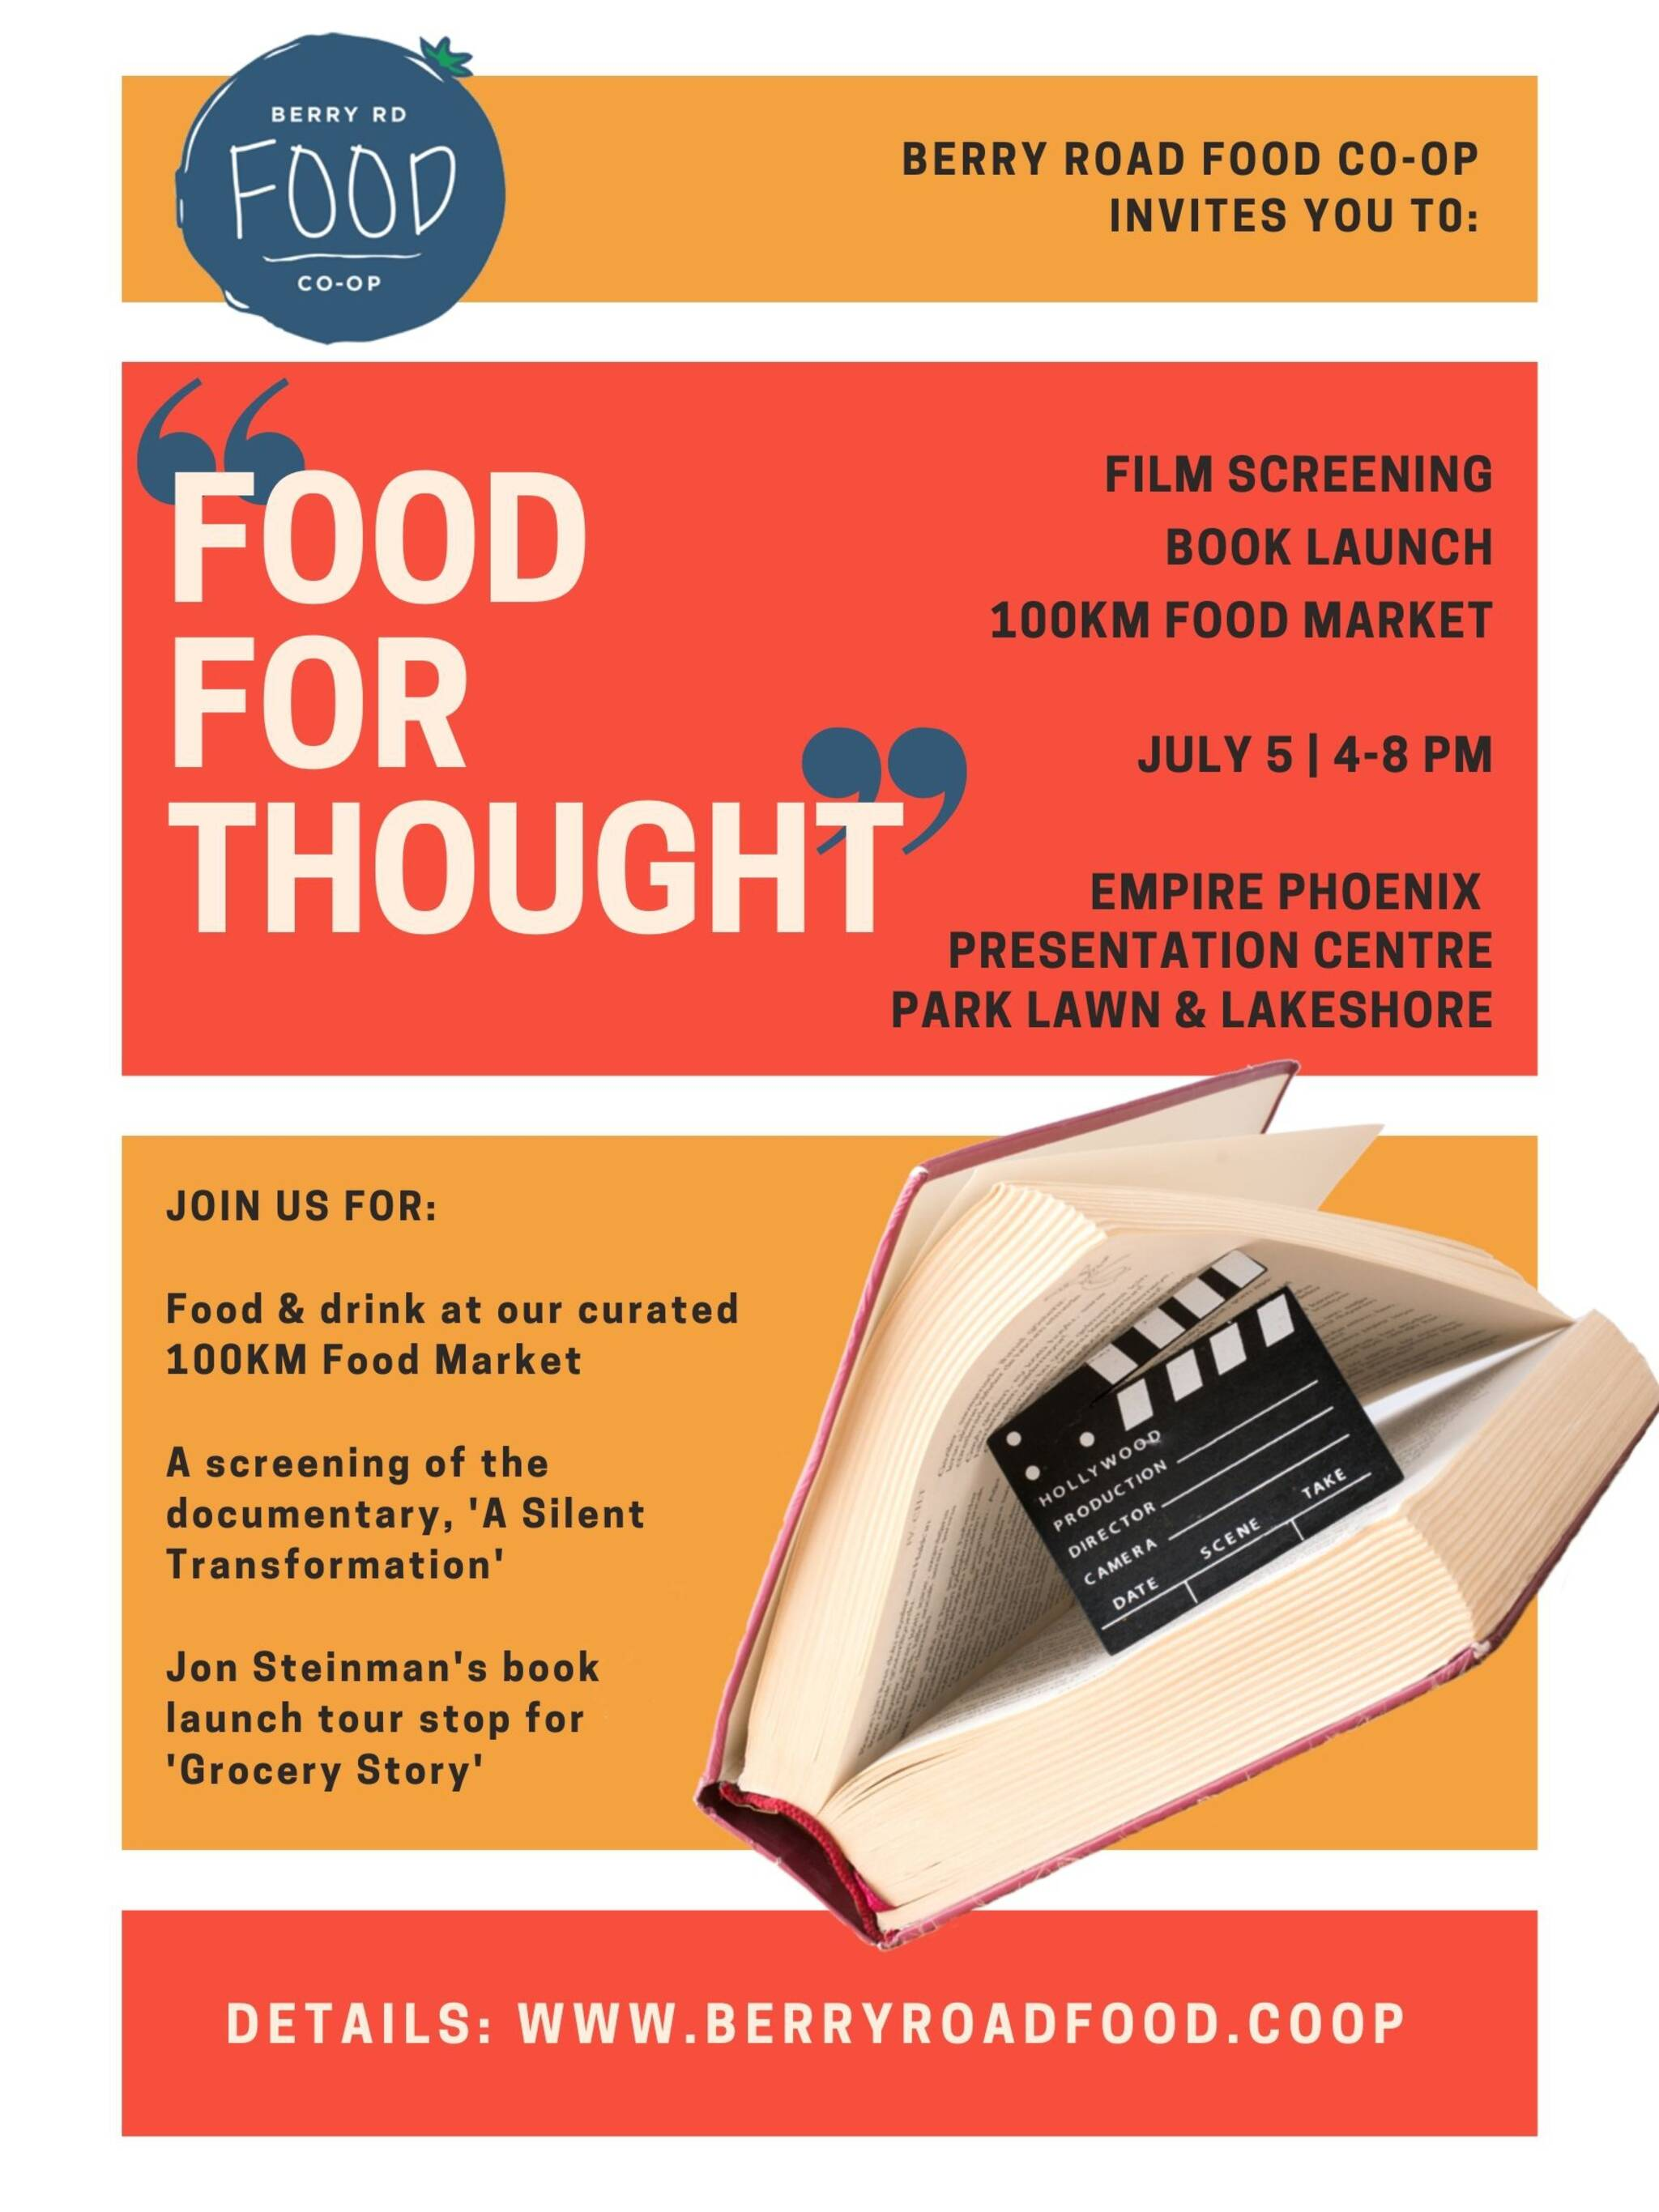 Food for Thought' Film, Book & Market Friday by Berry Road Food Co-op